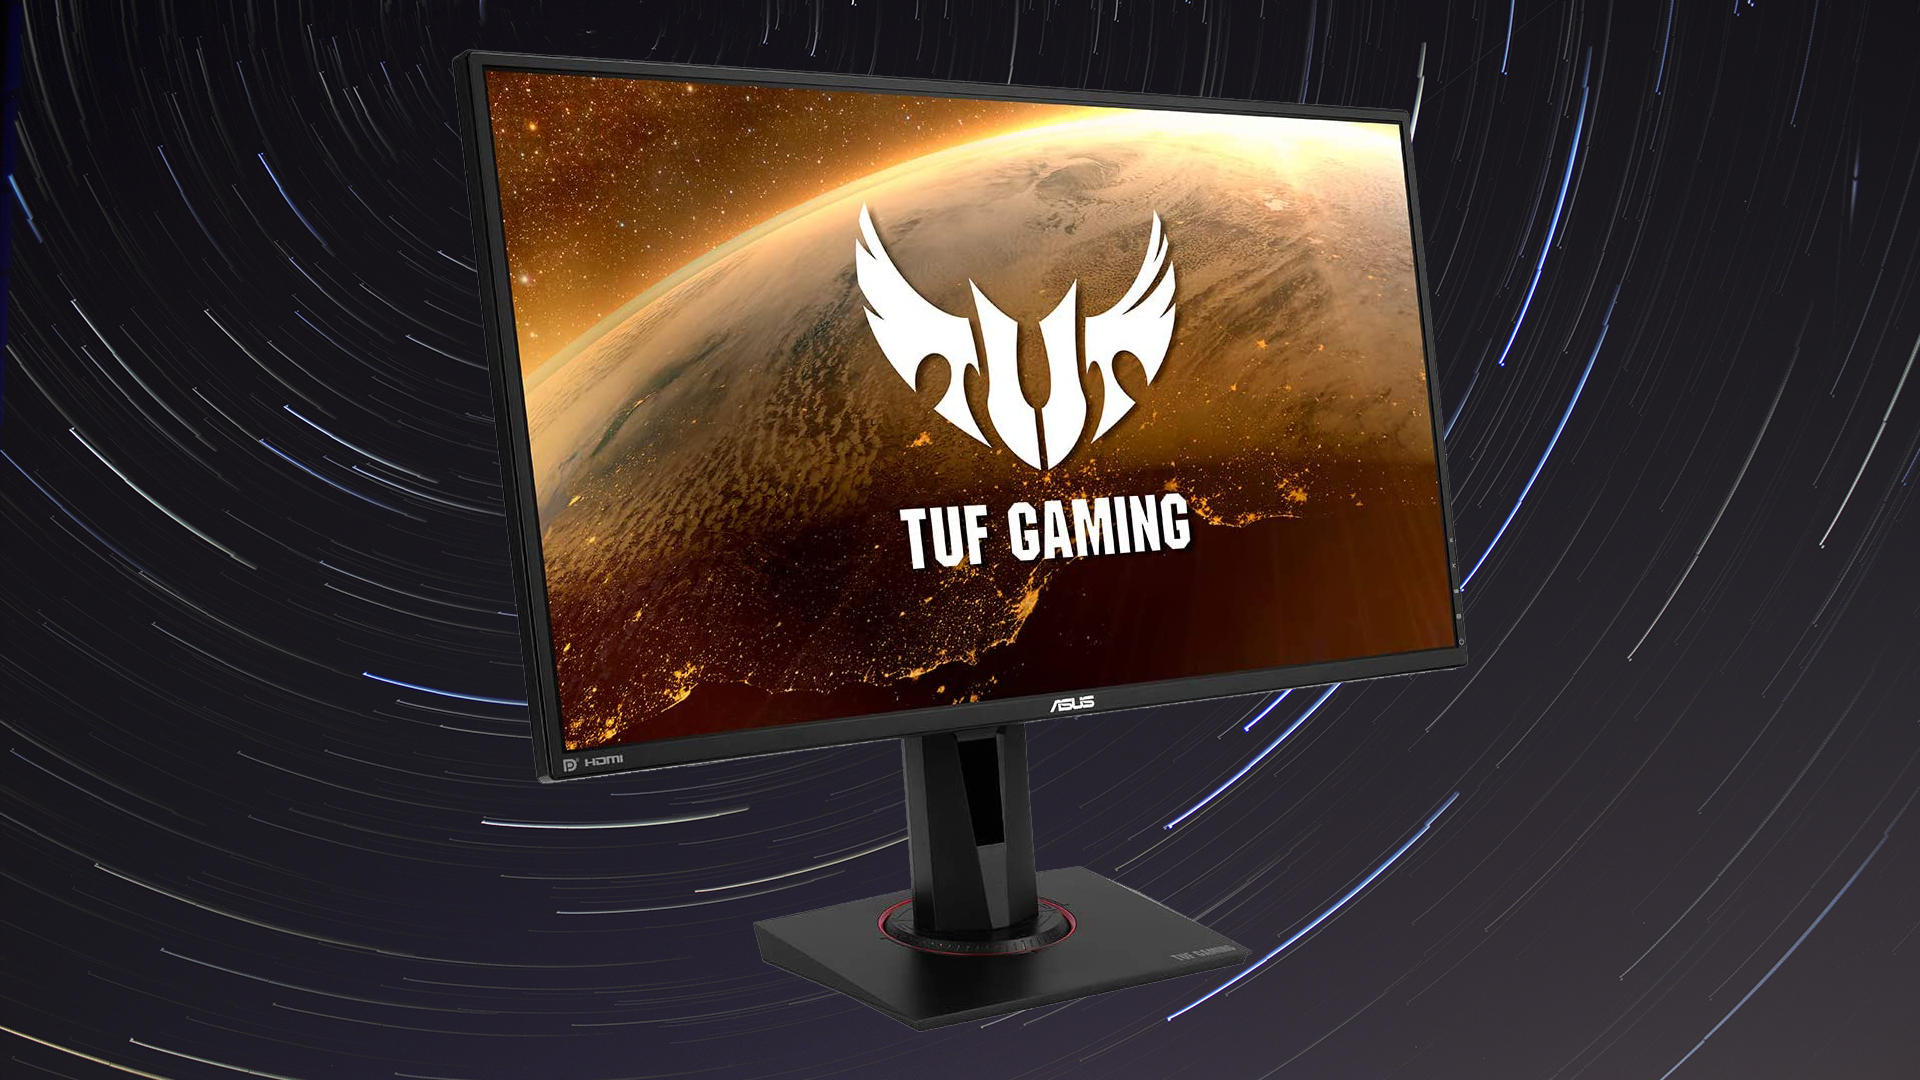 The Asus TUF 27 IPS 165Hz 1ms WQHD gaming PC screen sees its price drop